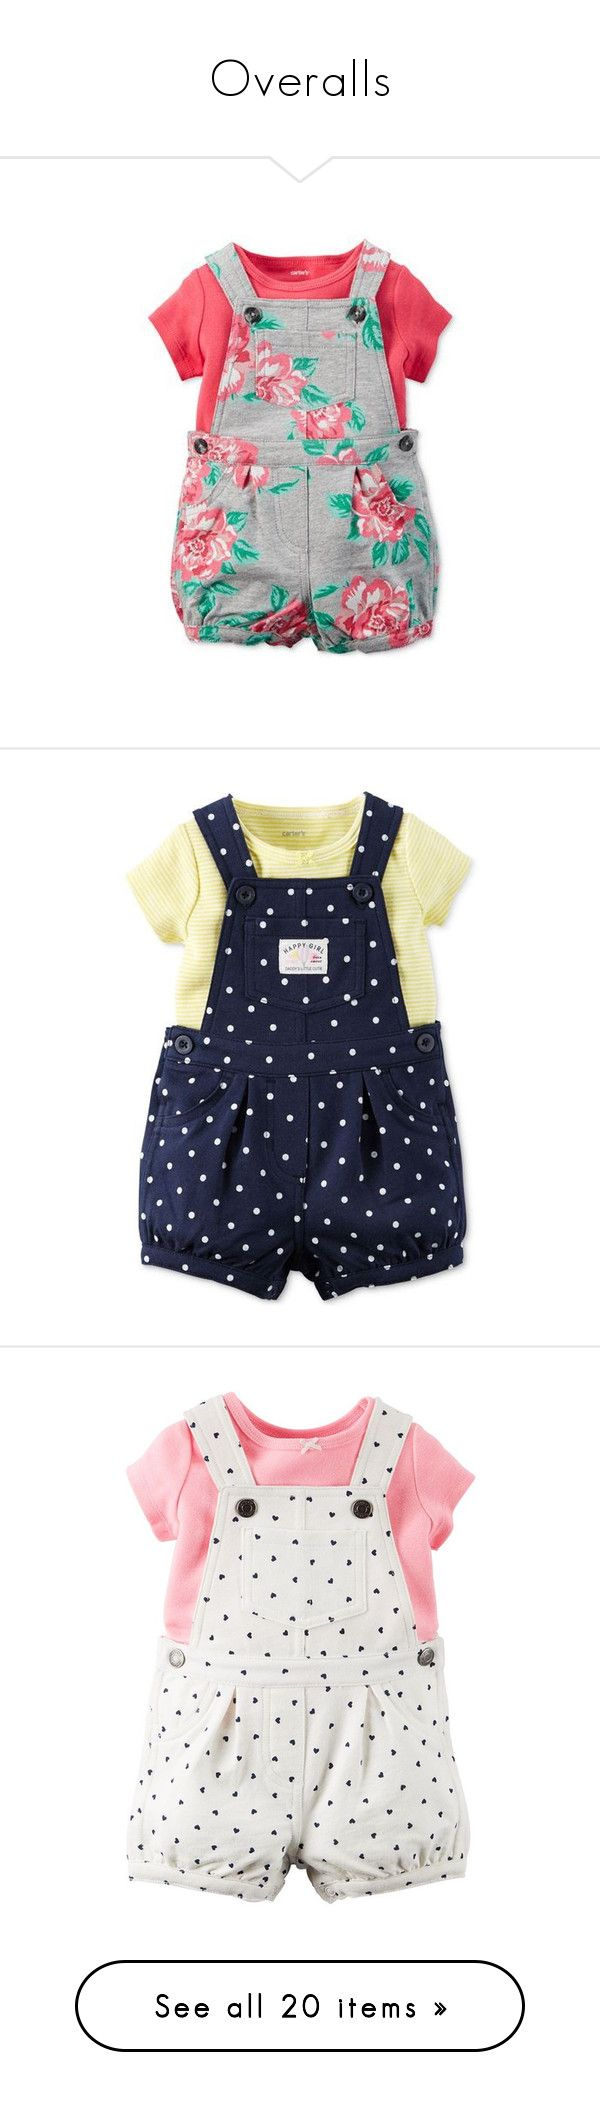 """""""Overalls"""" by crazyhat15 ❤ liked on Polyvore featuring baby, kids, overalls, shorts, short overalls, baby girl, bottoms, rompers, vestidos and baby clothes"""